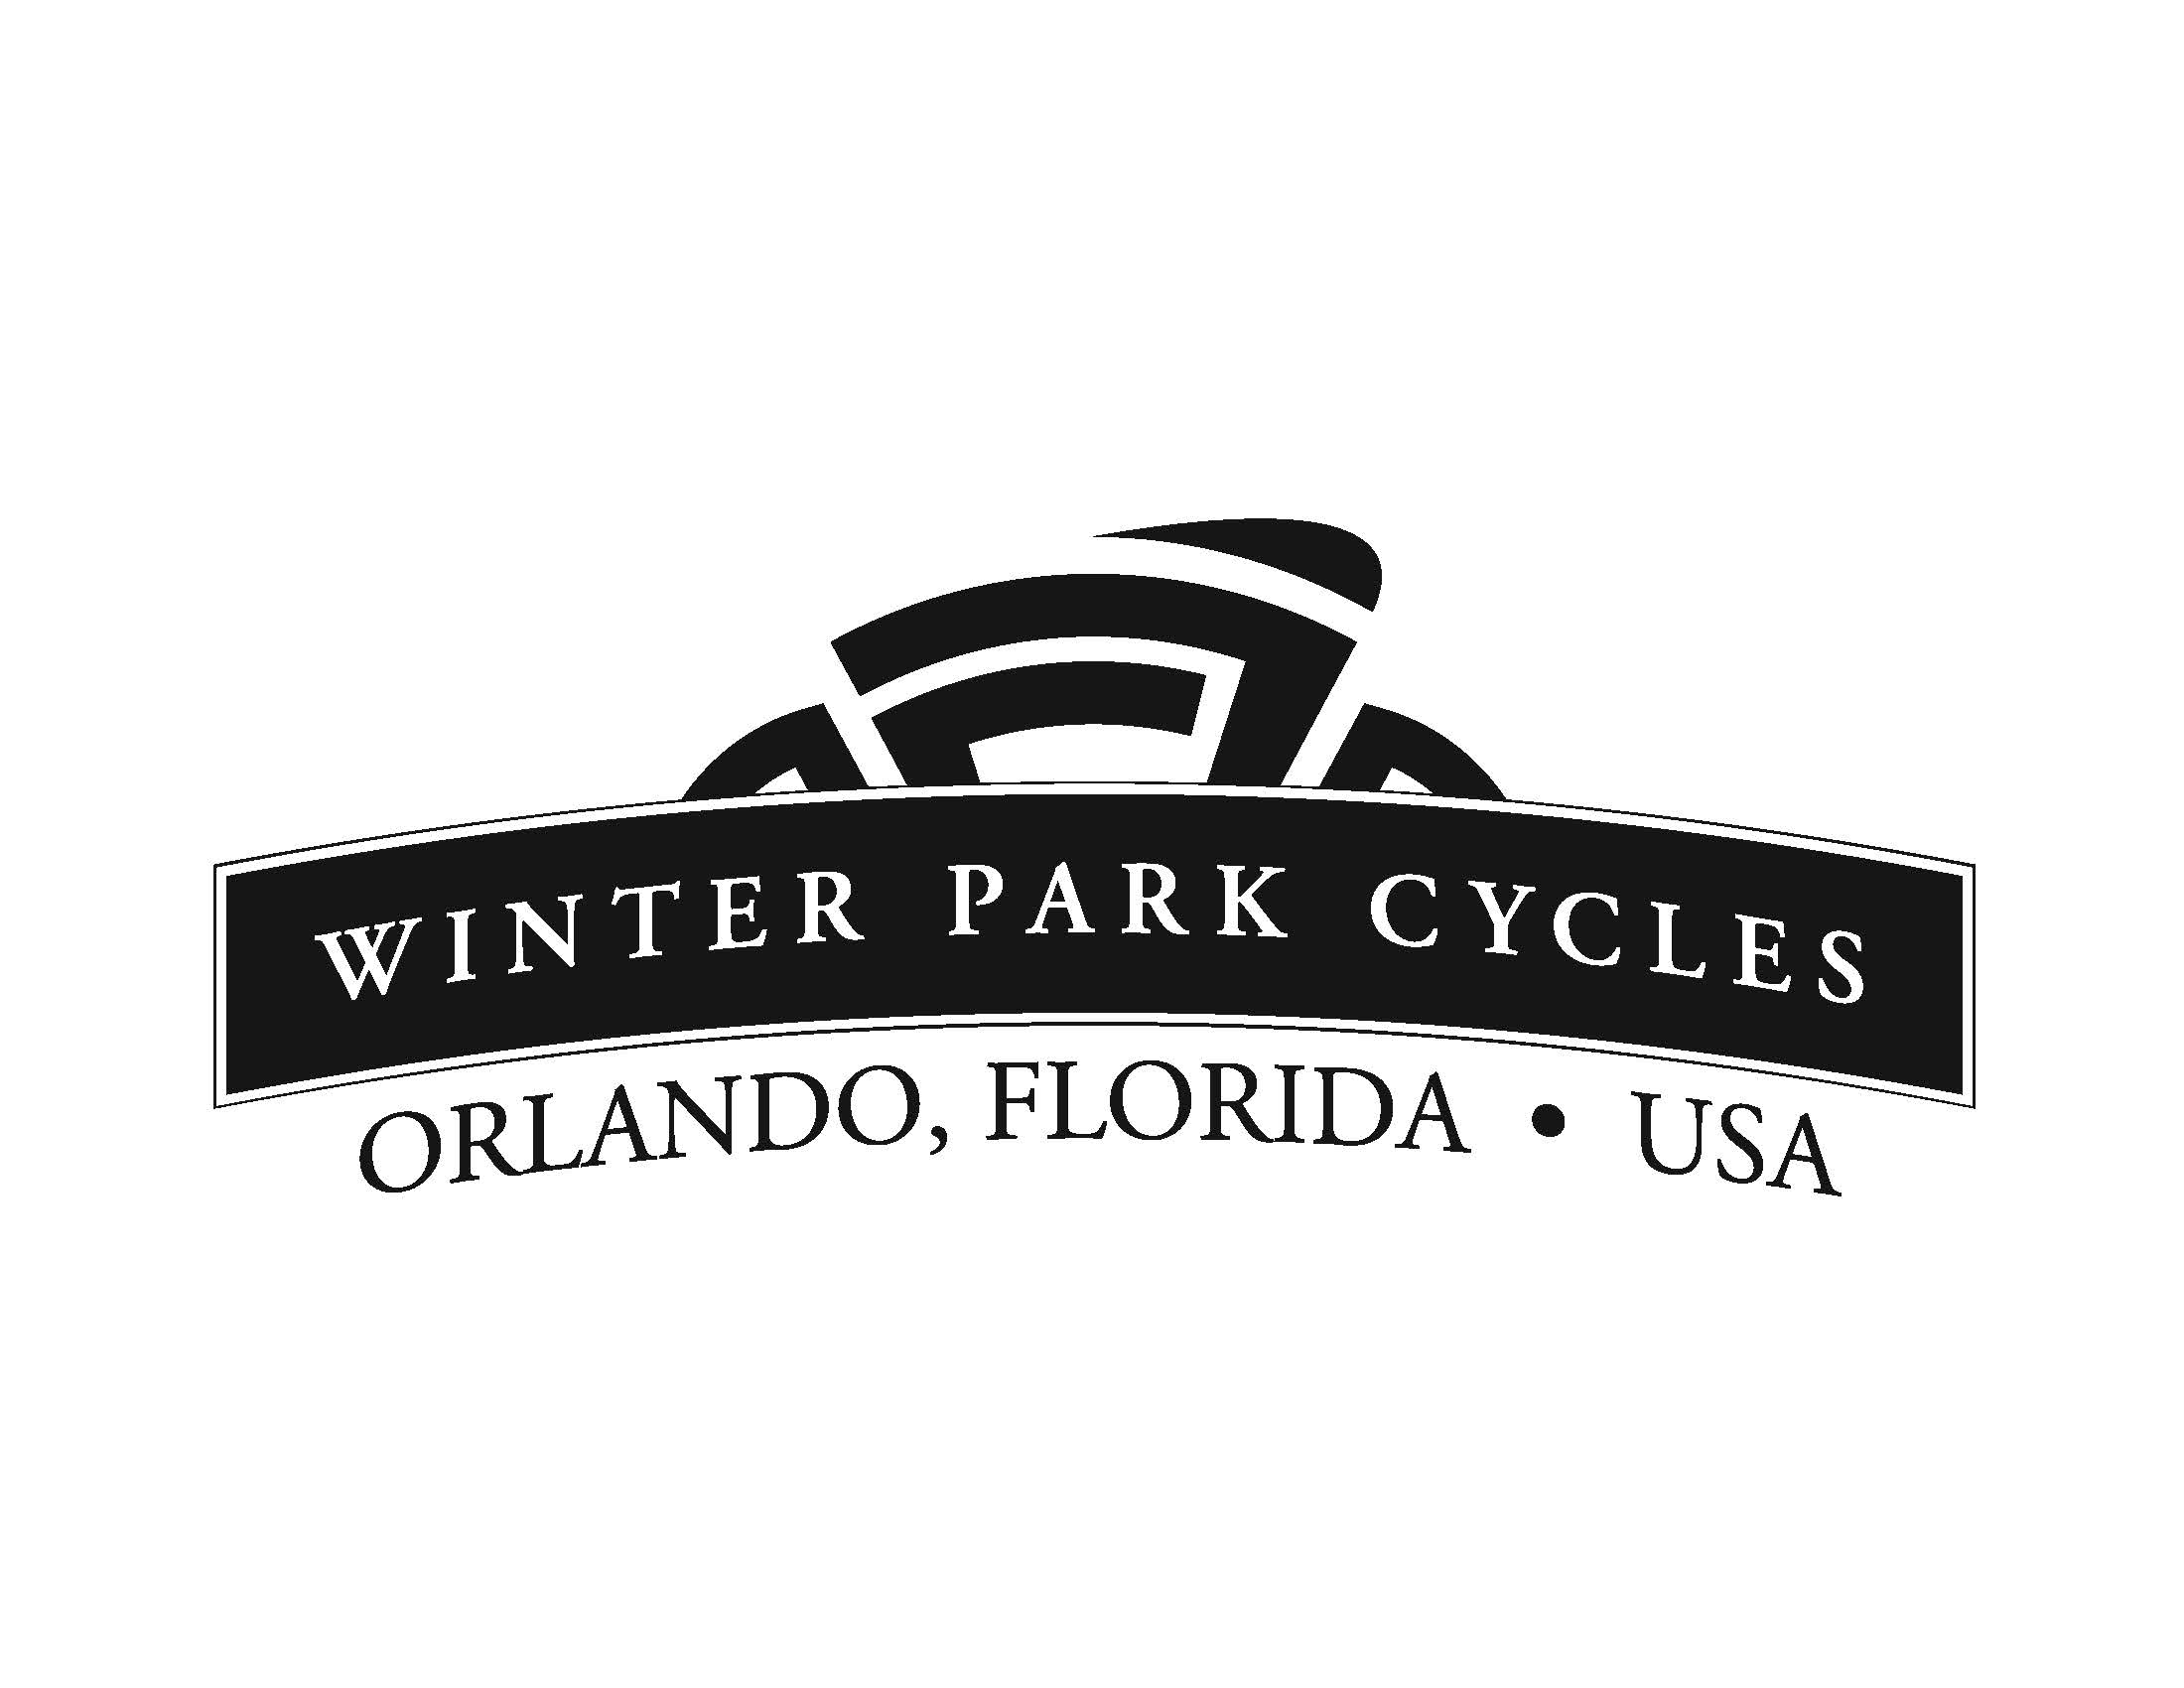 FLC_Bike_Winter_park_cycle_logo